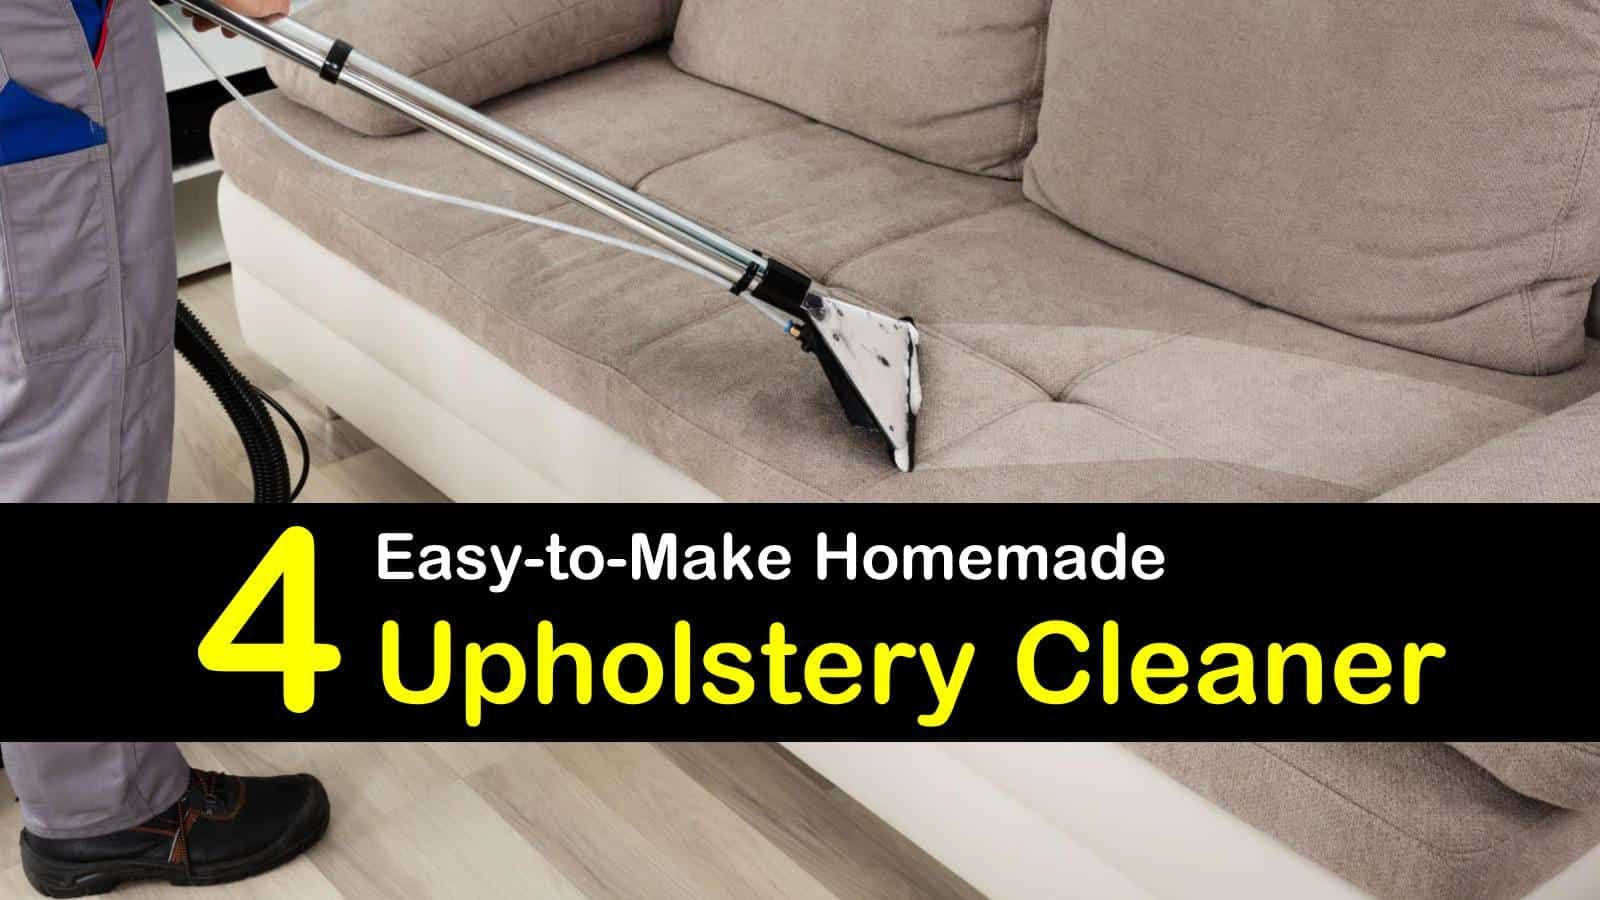 4 Homemade Upholstery Cleaner How To Clean Upholstery Homemade Upholstery Cleaner Upholstery Cleaning Machine Cleaning Upholstery